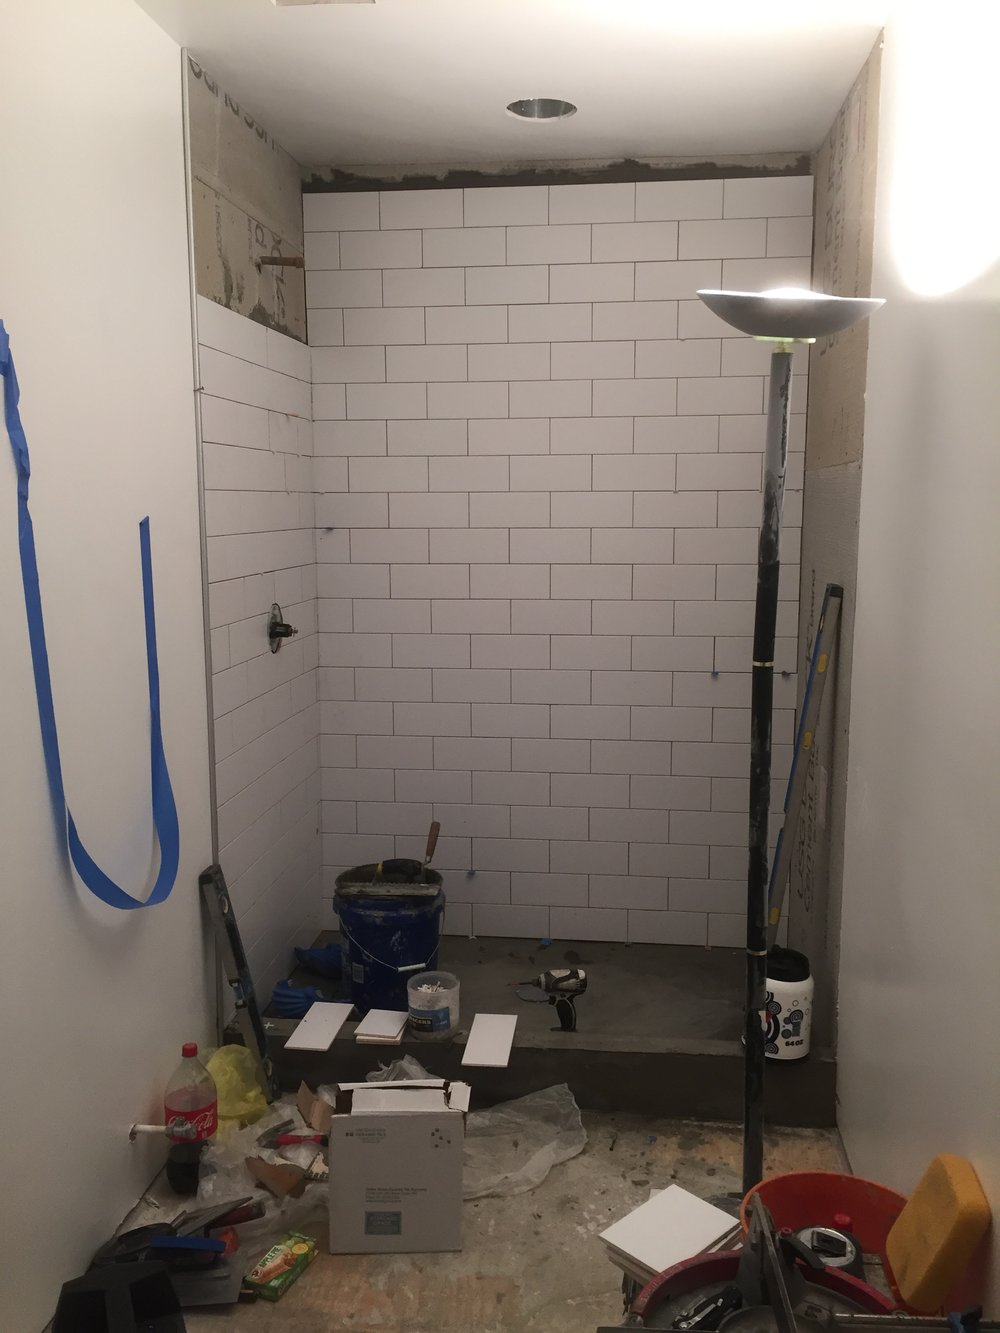 This was one of the most exciting parts, the shower going in! This for me meant that we were nearing the end at last!